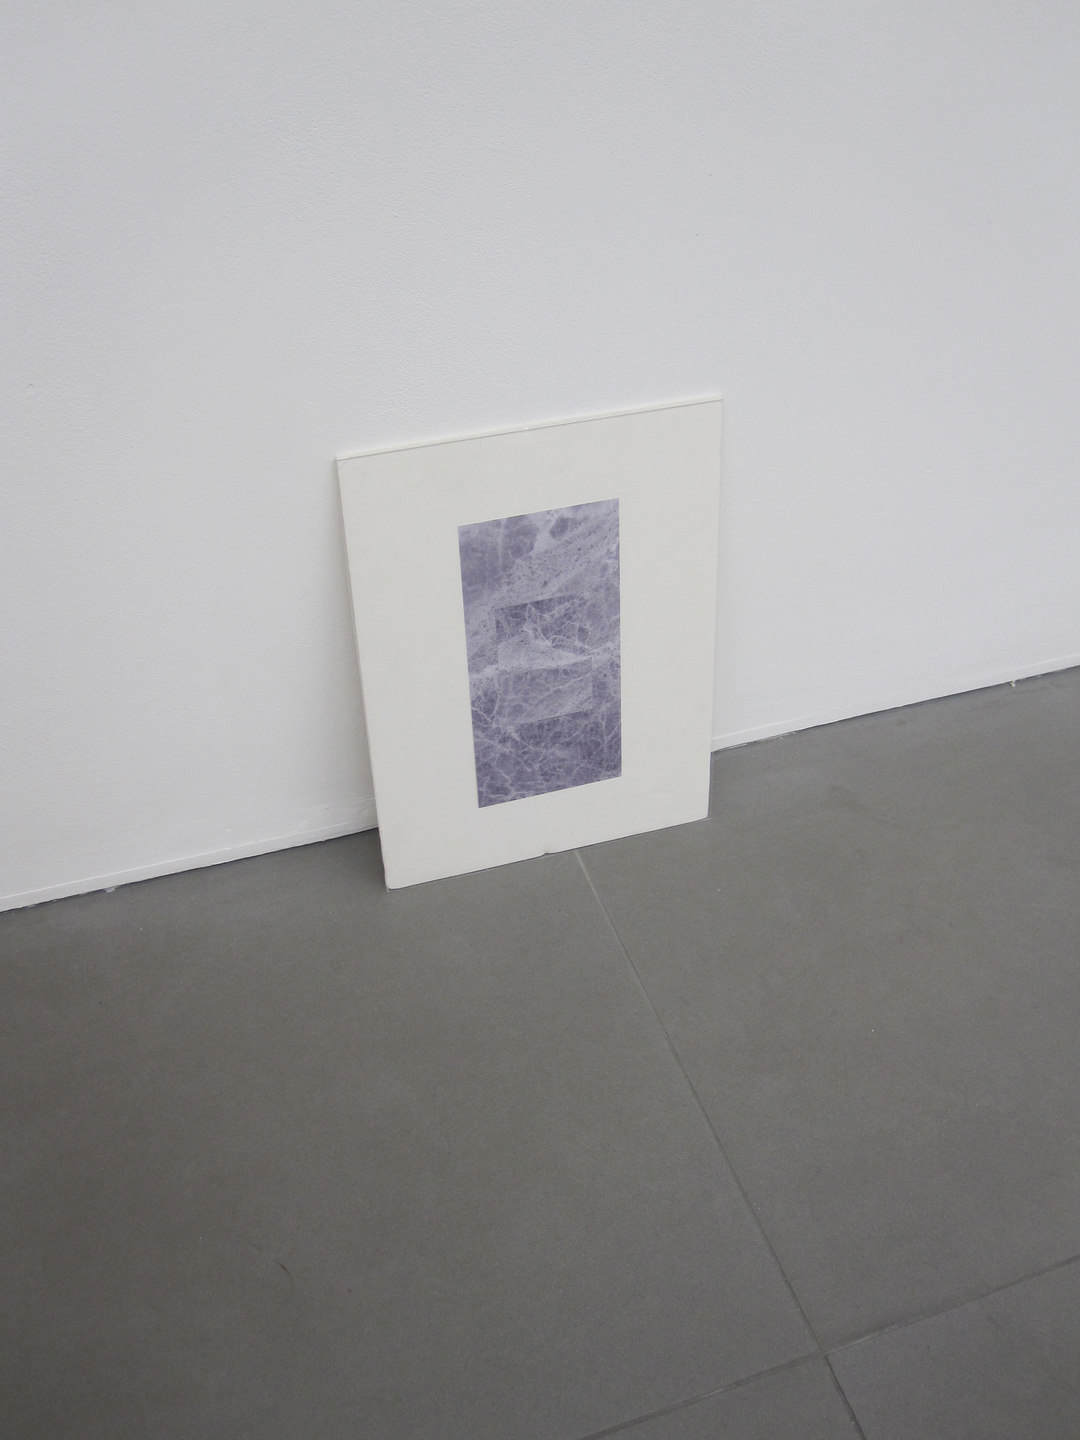 Maria Taniguchi, Untitled (Marble sketch)' 2010, inkjet print, acrylic sheet, foam board, (h.410mm x w.310mm), Cell Project Space